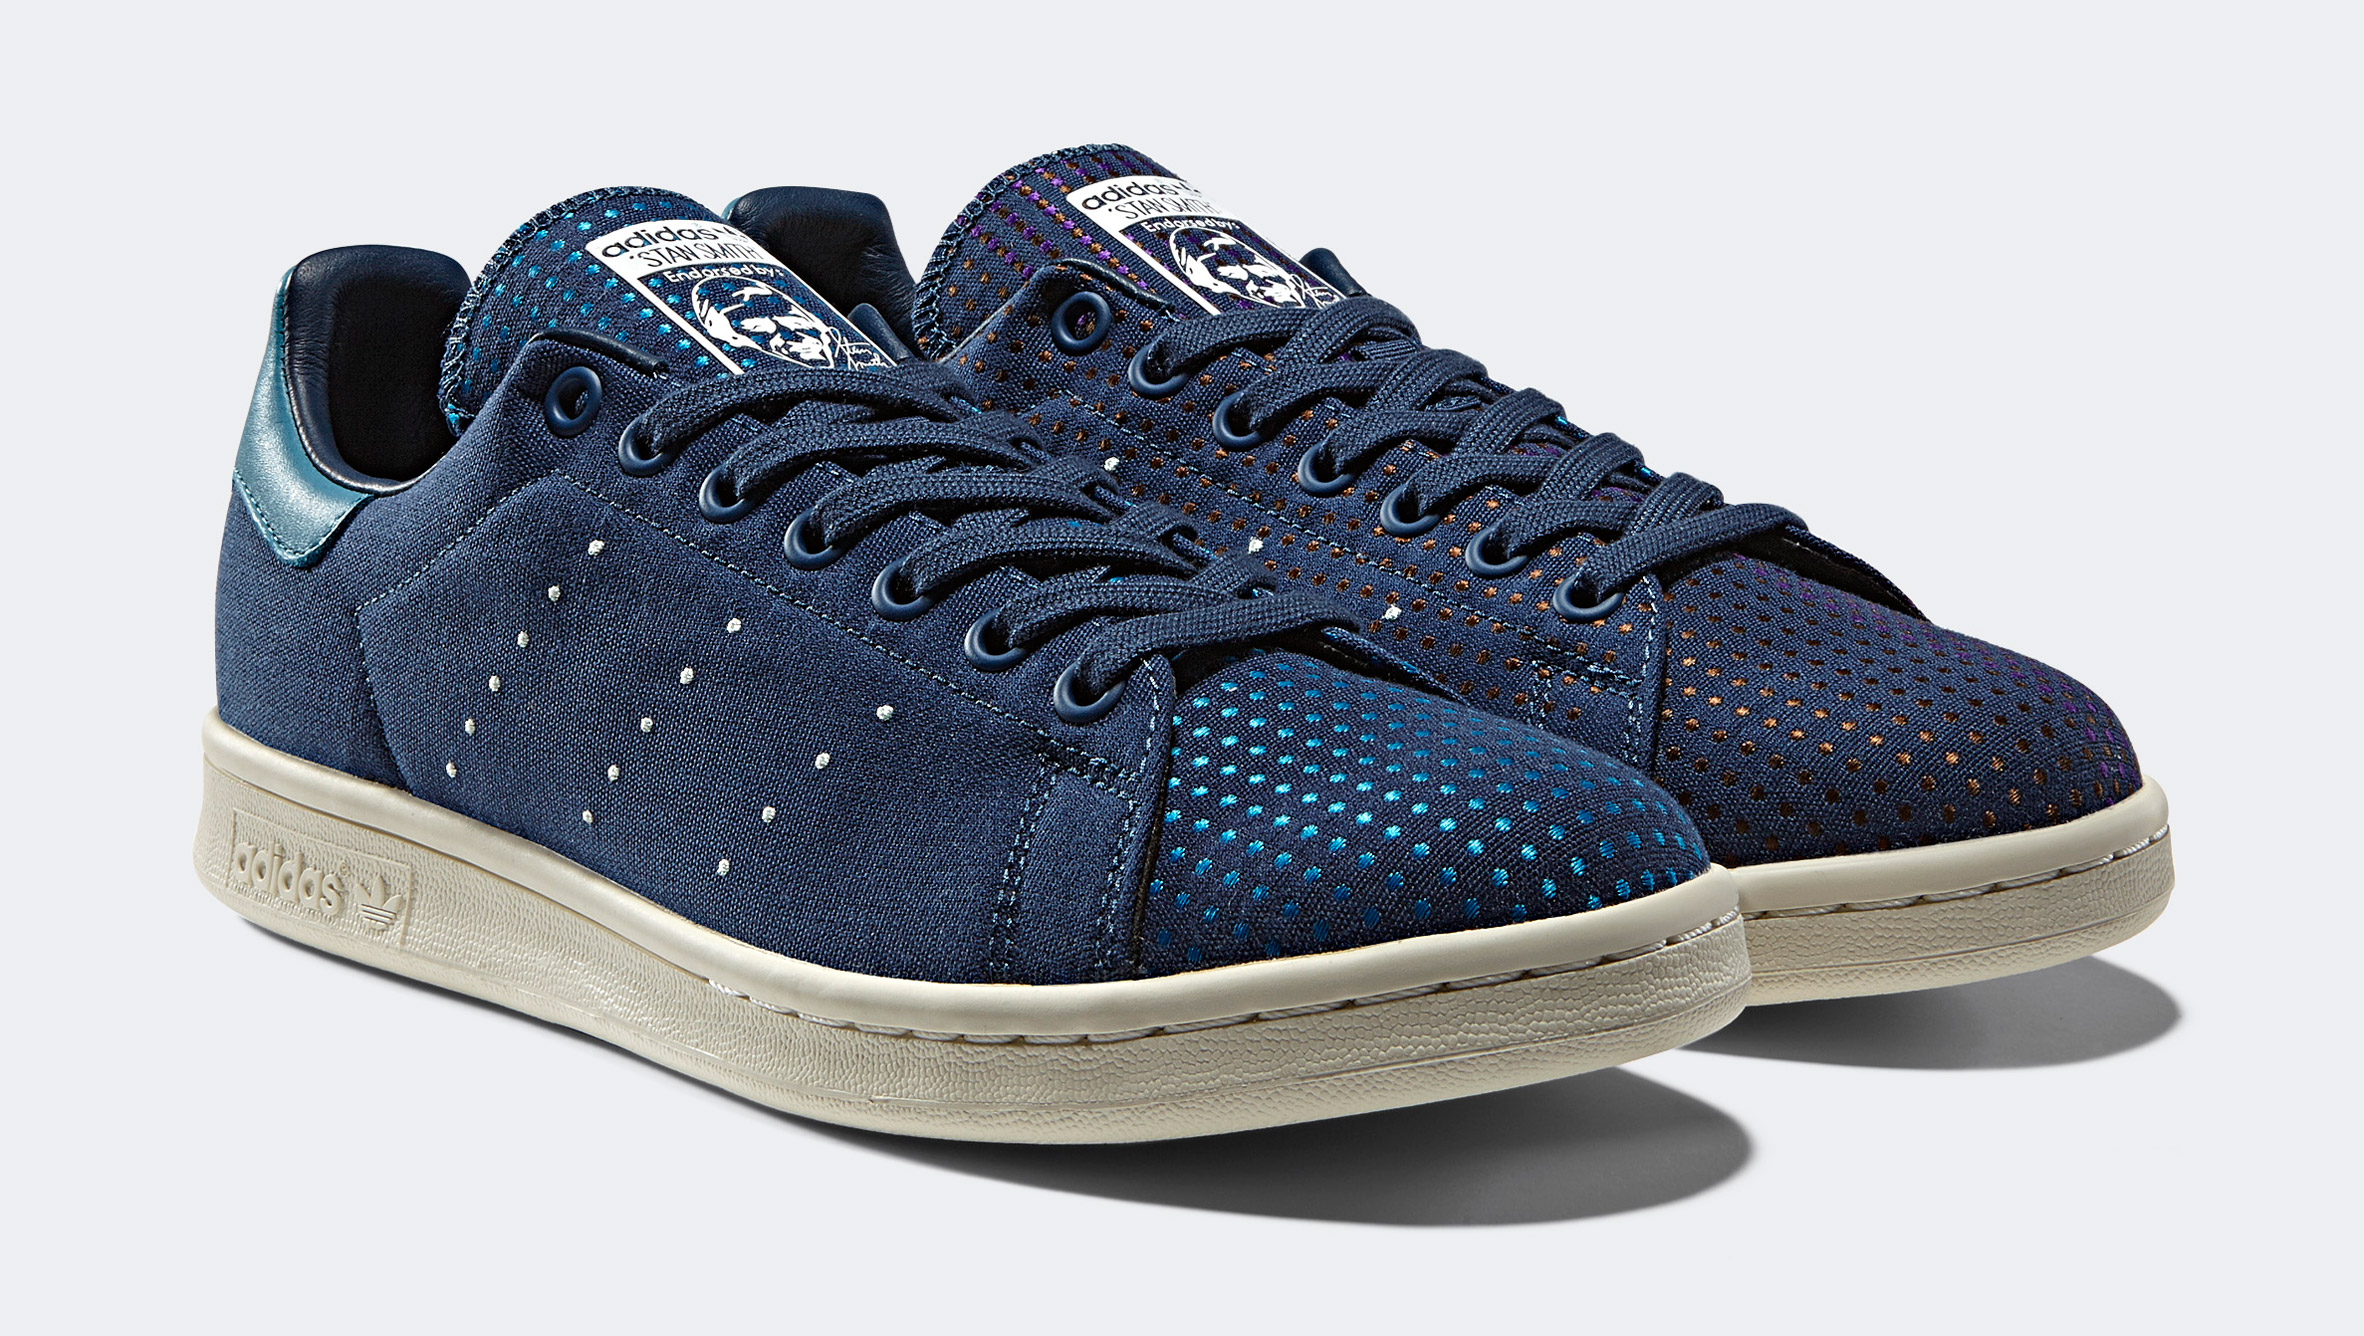 special-edition Stan Smith trainers